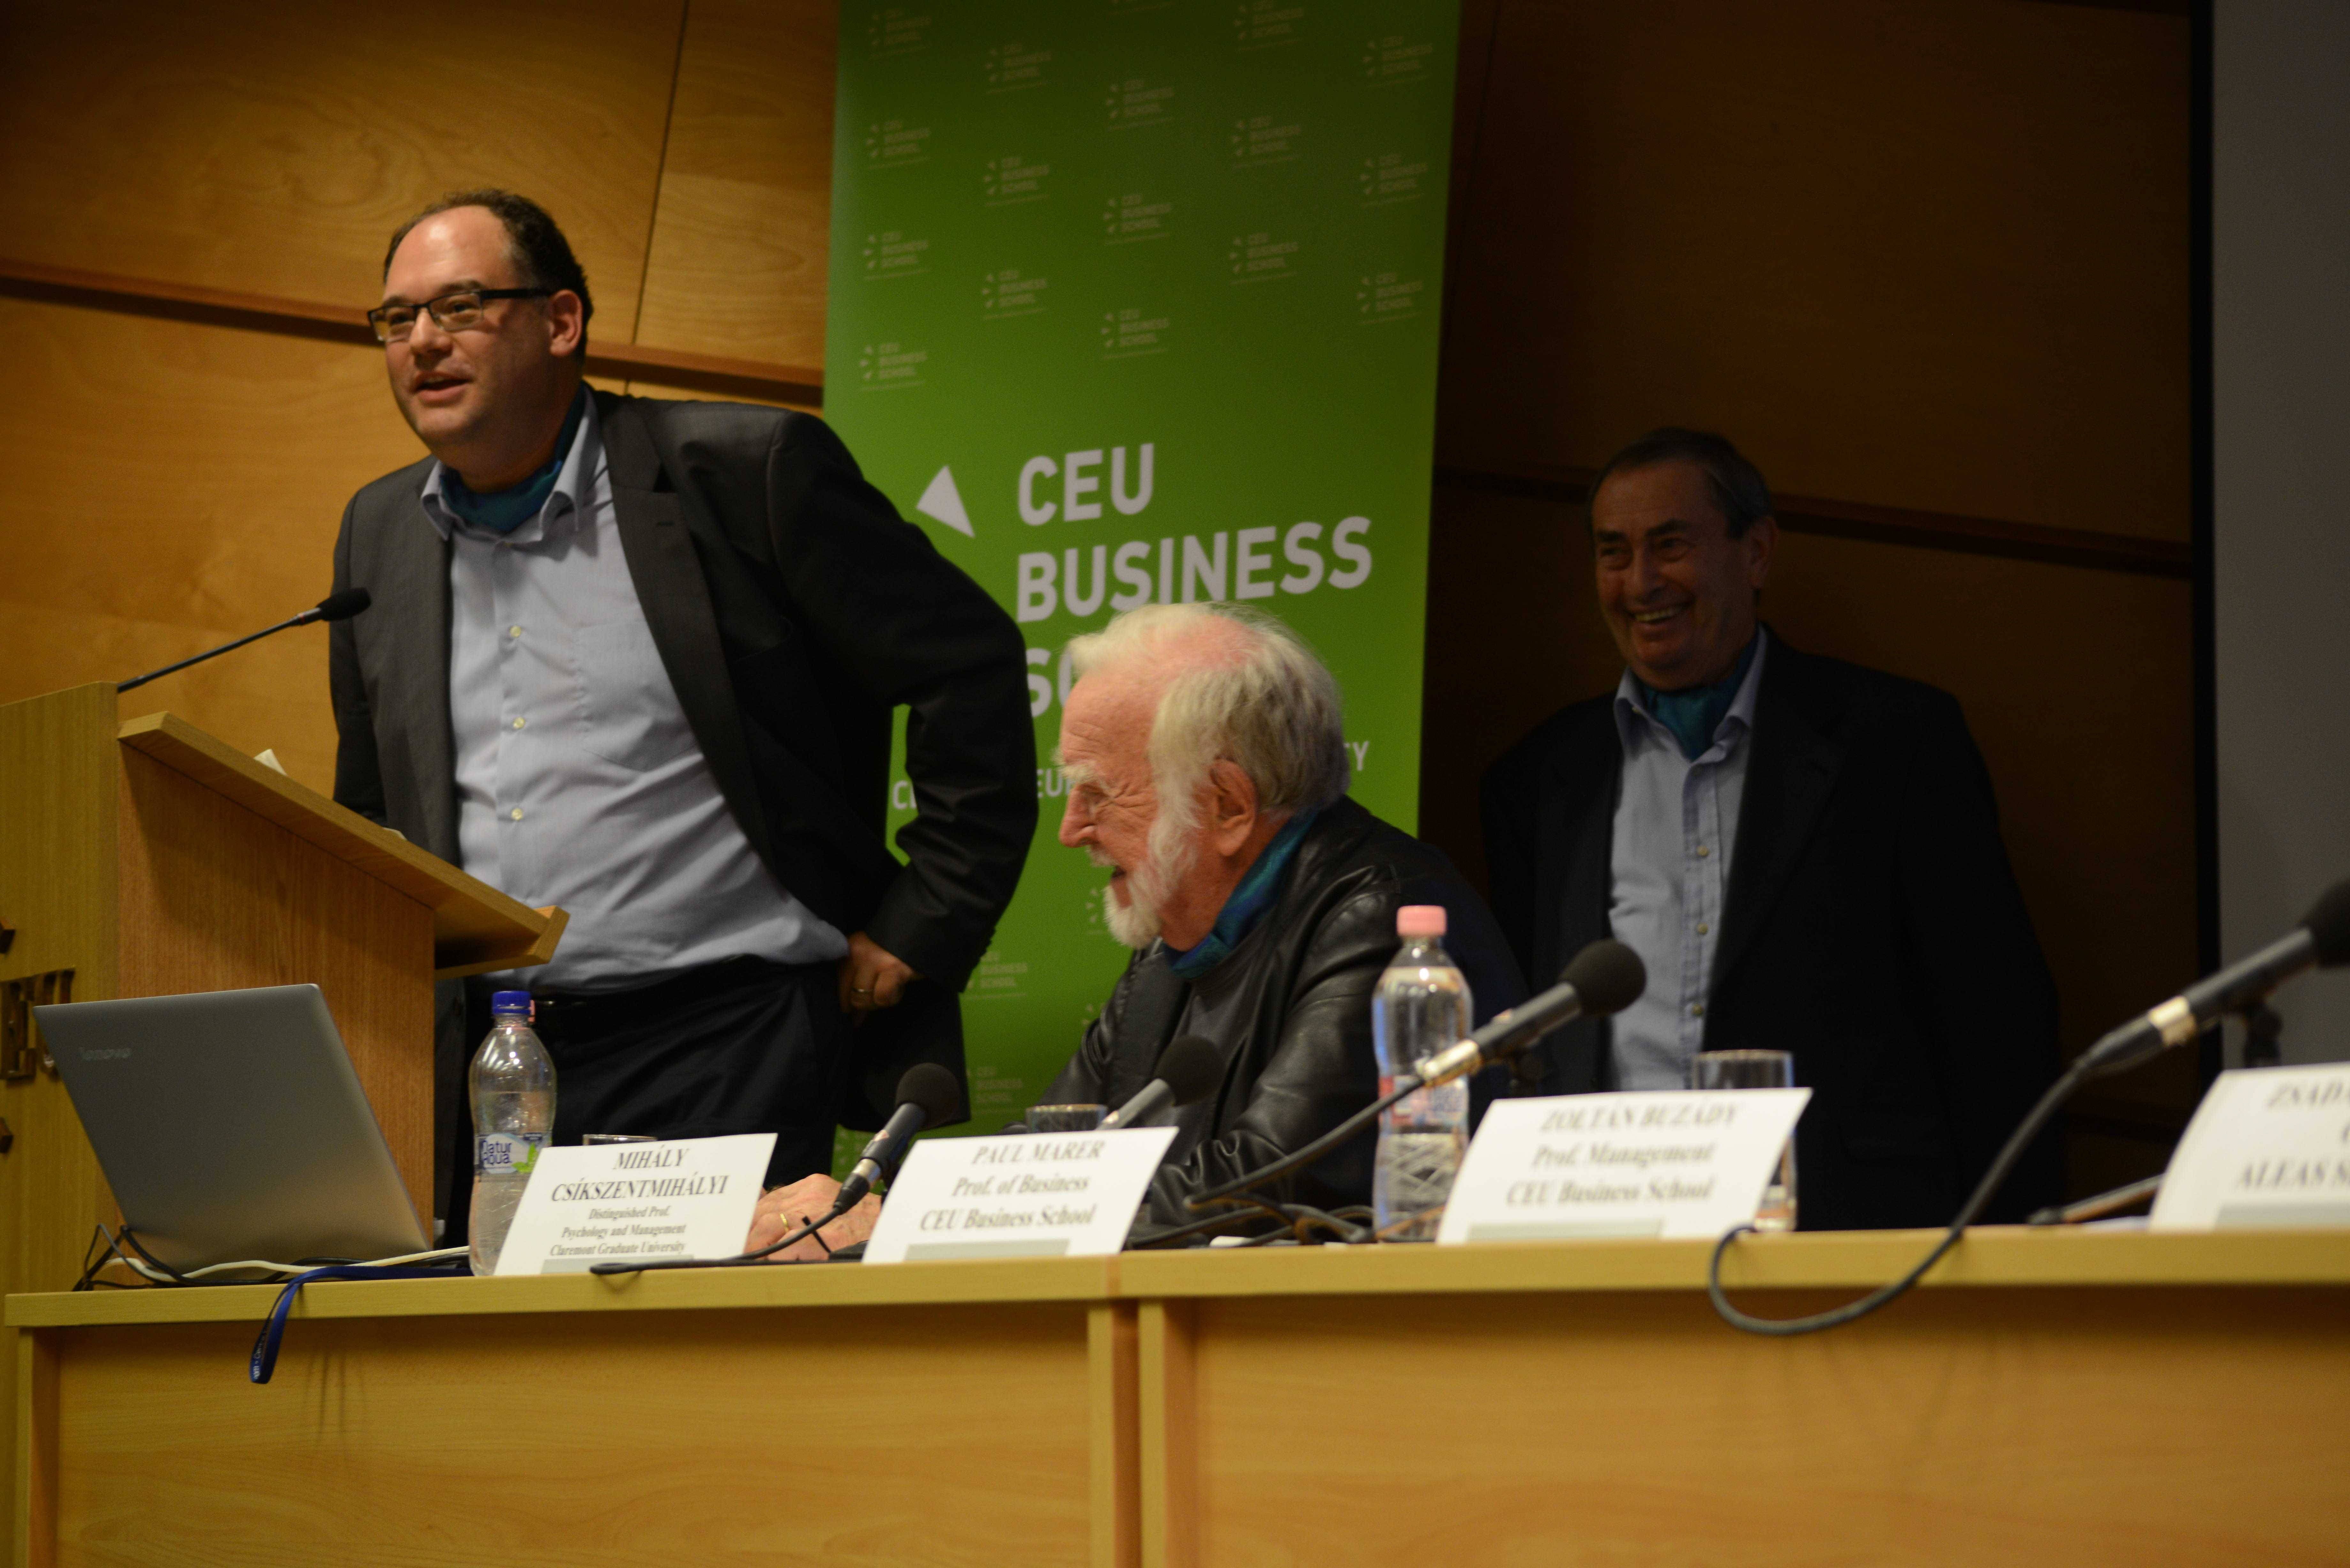 Zoltan Buzady, faculty member at CEU Business School, with Mihalyi Csikszentmihalyi and Professor Paul Marer (background) of CEU Business School. Photo: Edina Ligeti.